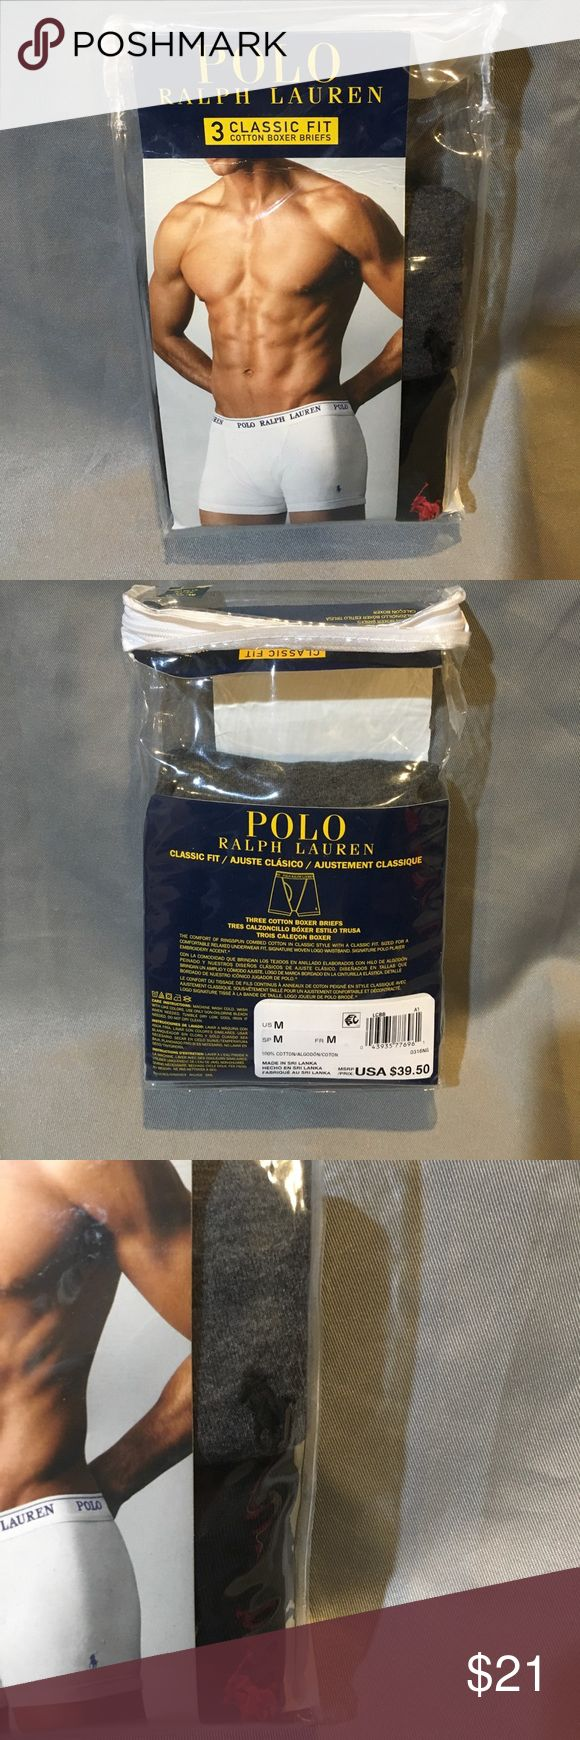 NWT Polo Ralph Lauren Men's 2 Pair Boxer Briefs NWT Polo Ralph Lauren Men's 2 Pair Boxer Briefs. Classic for. It was a 3 pack, but one was missing. Polo by Ralph Lauren Underwear & Socks Boxer Briefs